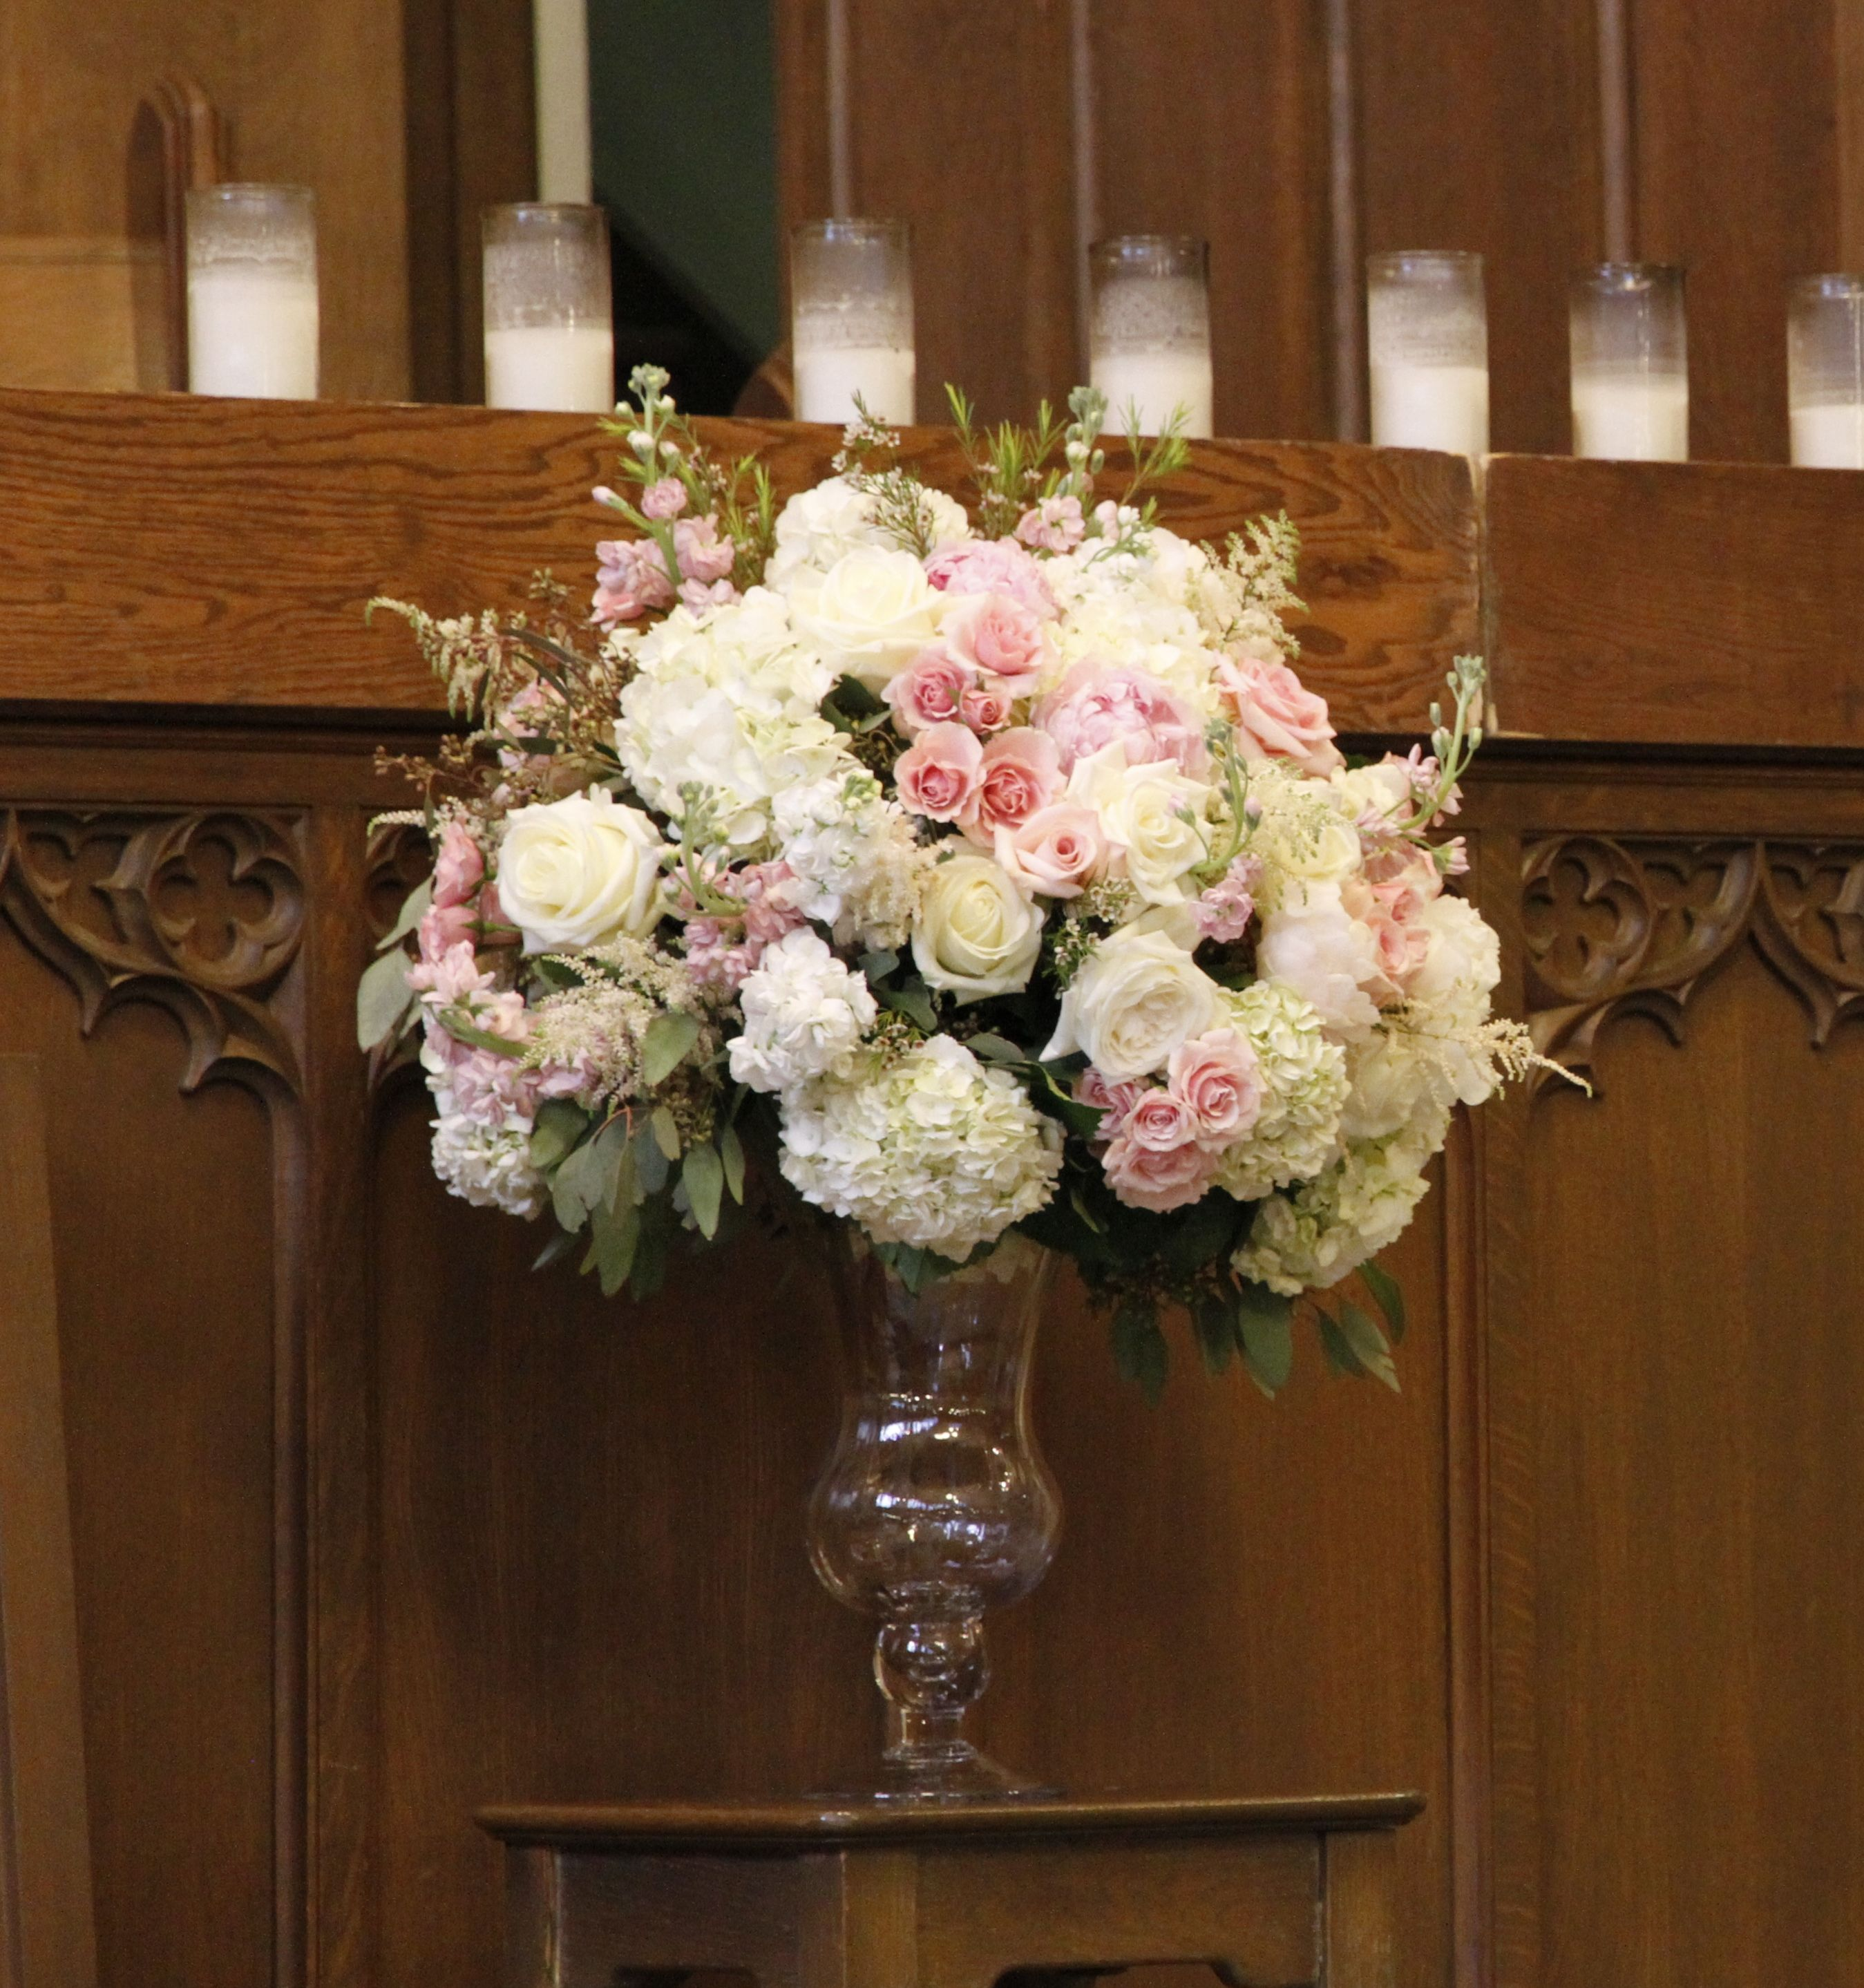 Wedding Flower Arrangements: Best 25+ Altar Flowers Ideas On Pinterest